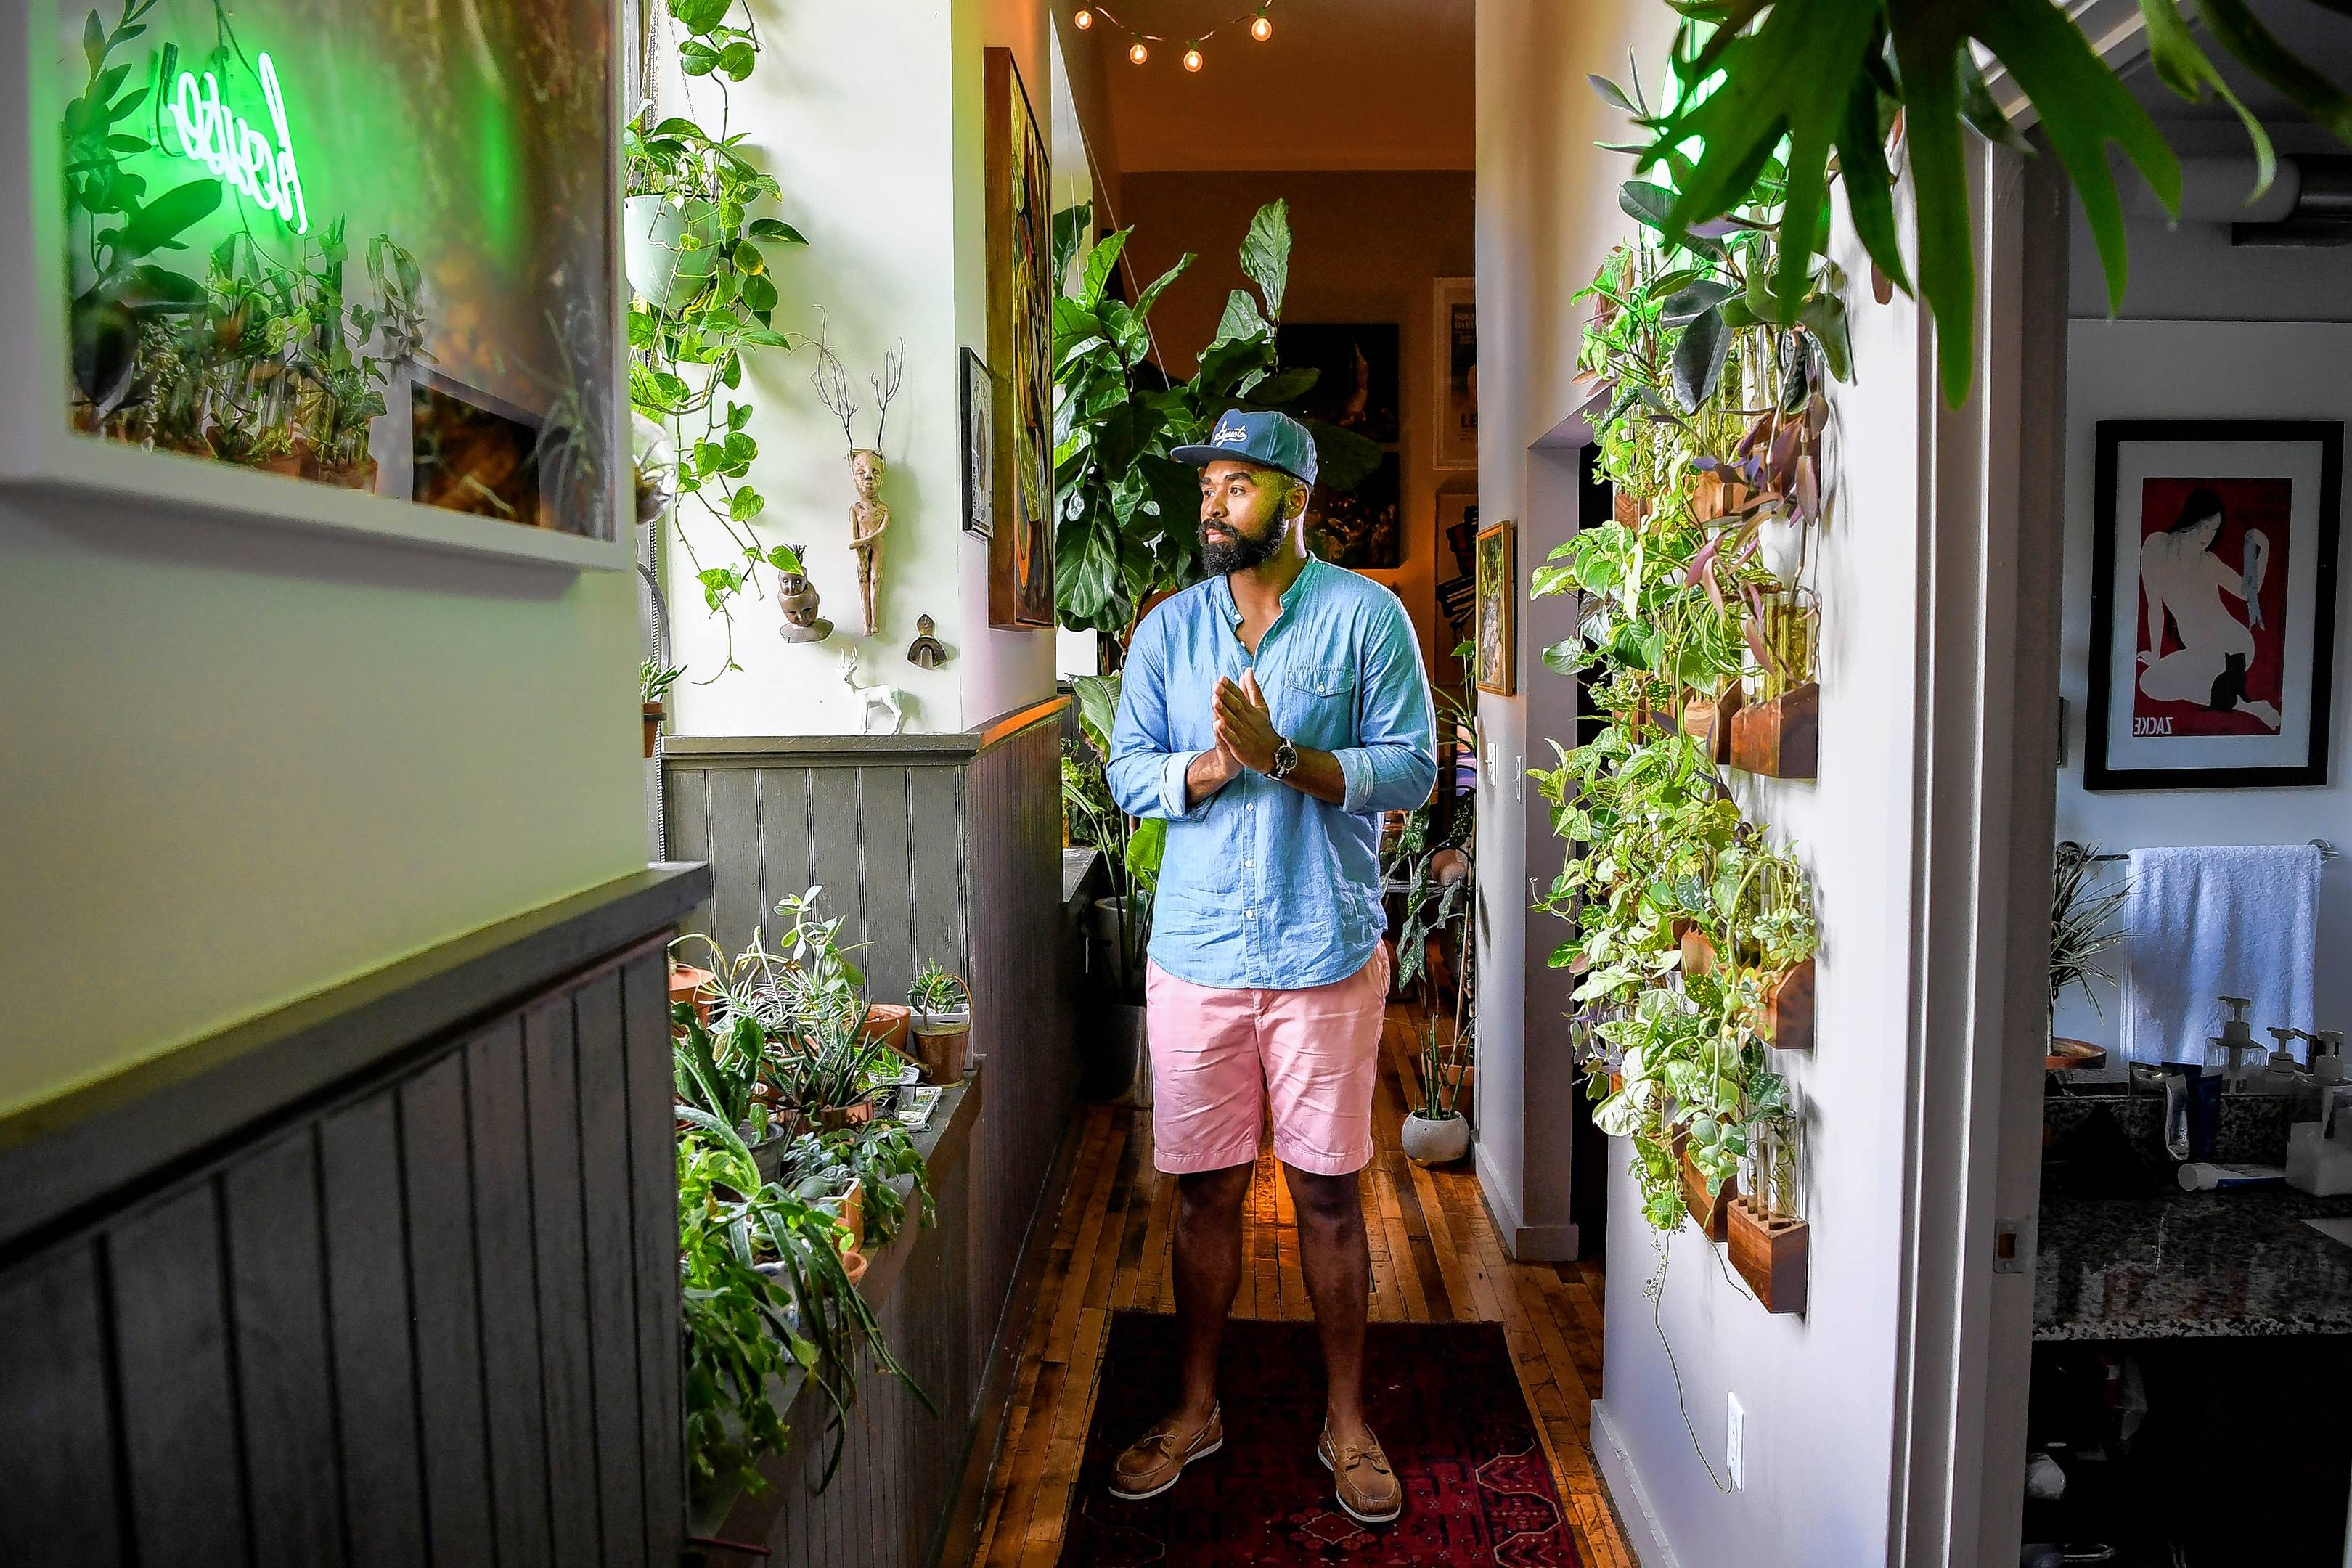 Hilton Carter, 37, has always enjoyed plants. But his Baltimore apartment now holds 180, and it's a perfect example of a growing trend.